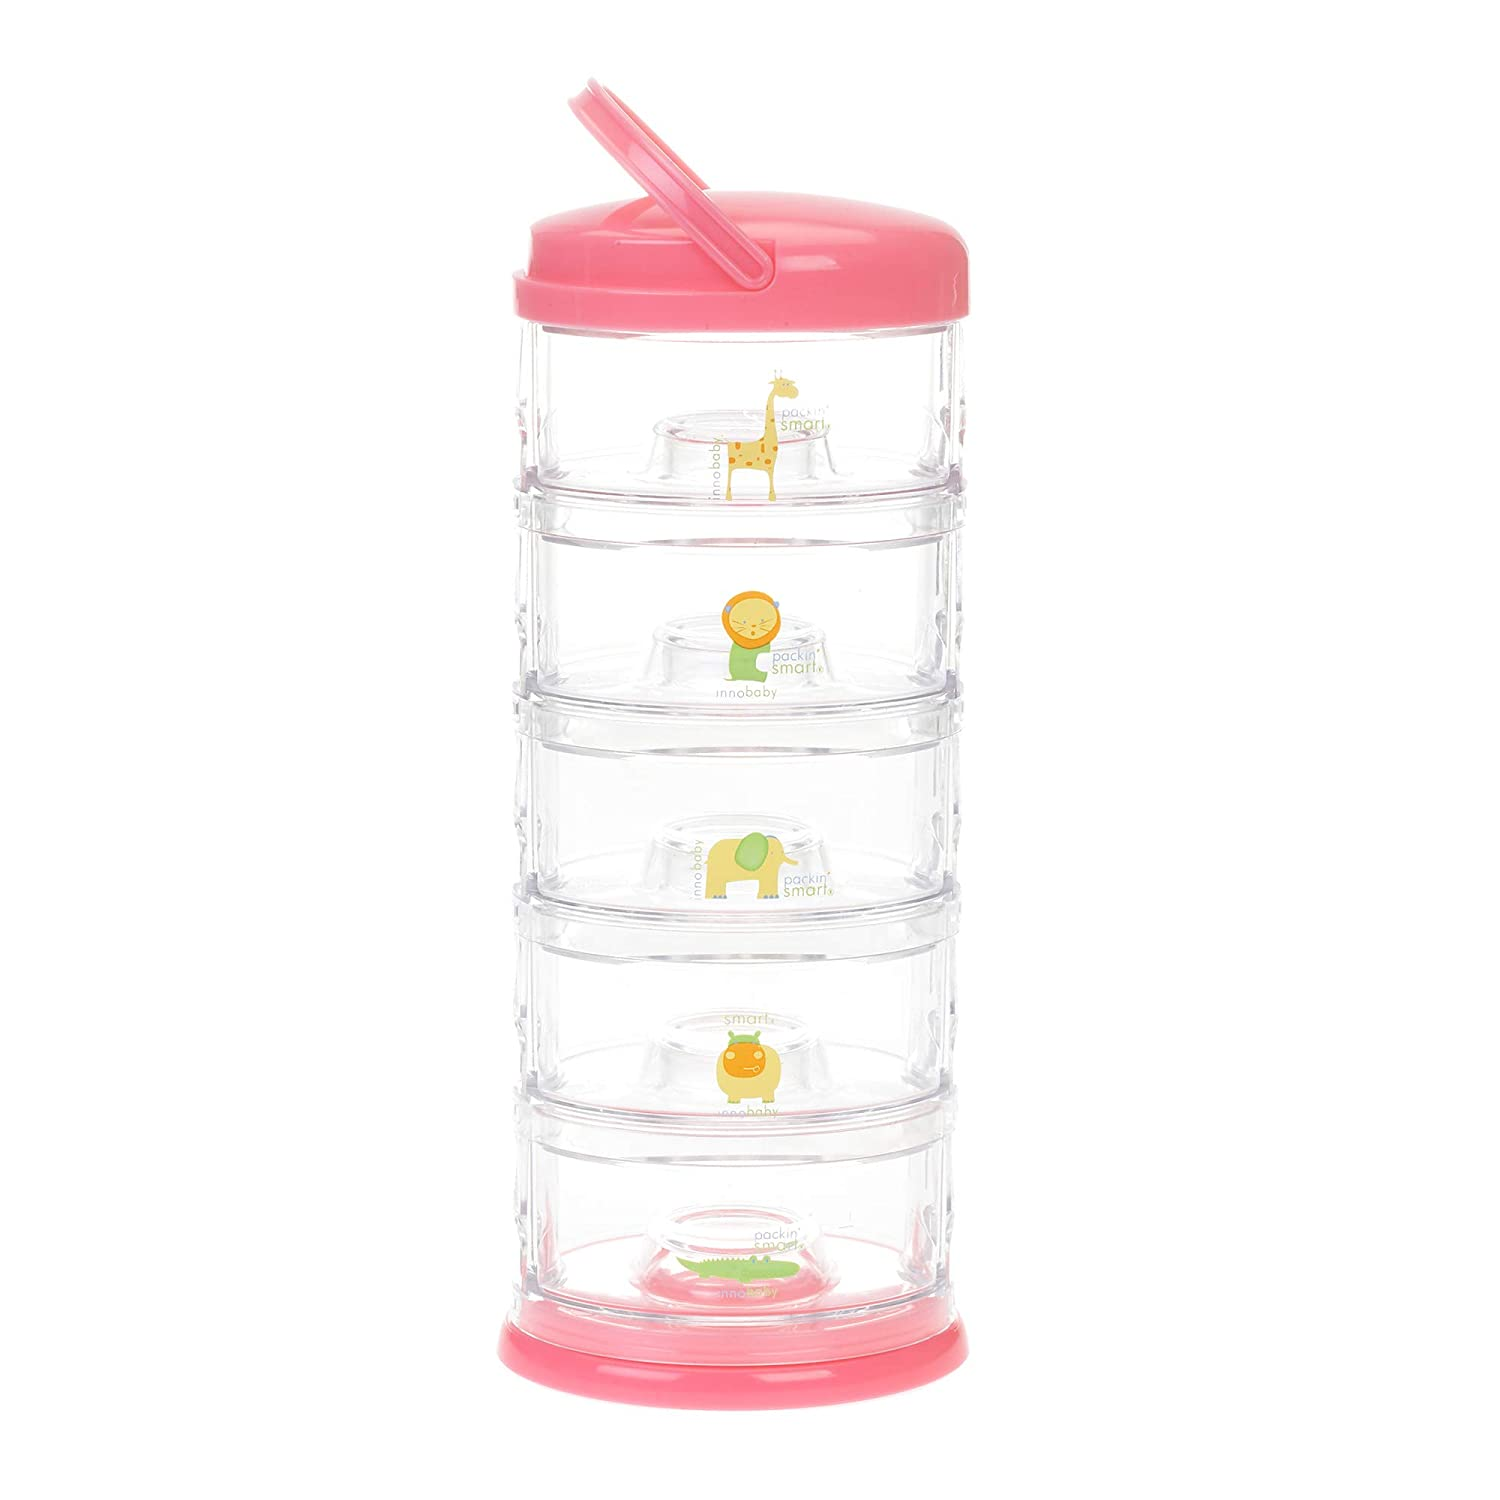 Innobaby Packin' Smart Stackable and Portable Storage System for Formula, Baby Snacks and More. 5 Stackable Cups in Strawberry Sorbet. BPA Free.